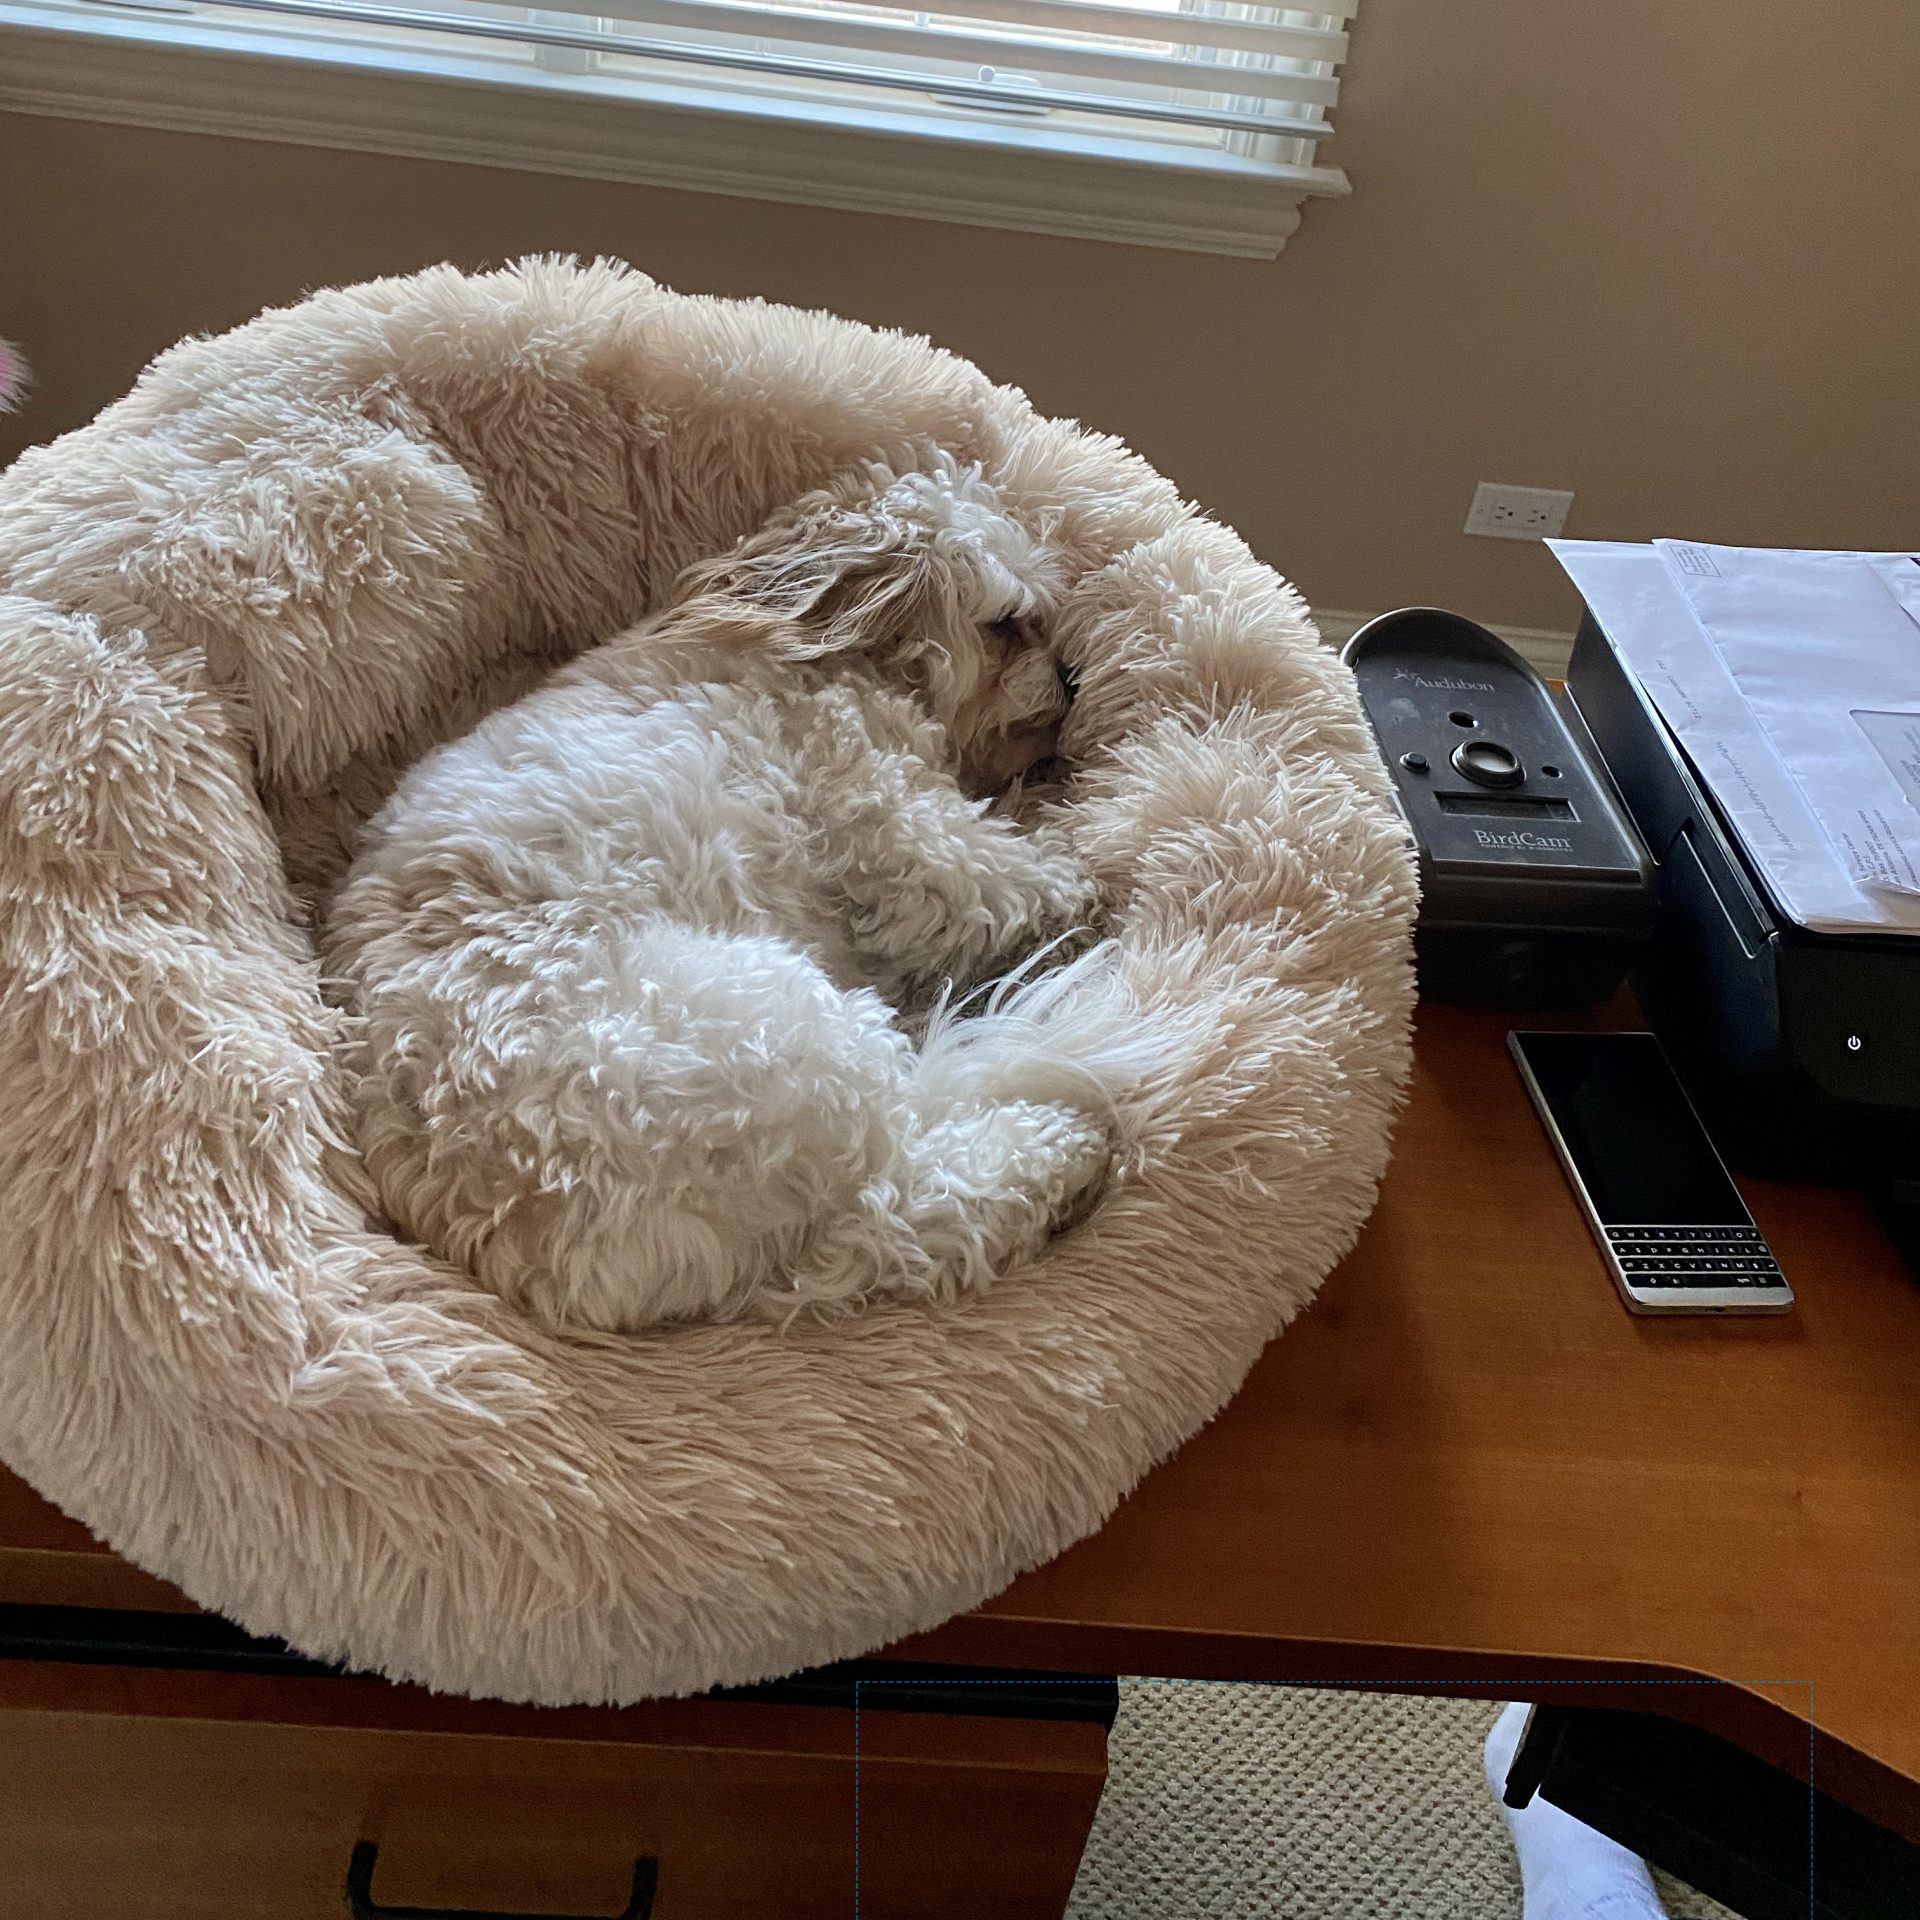 Dog Enjoying a Soothing Dog Bed